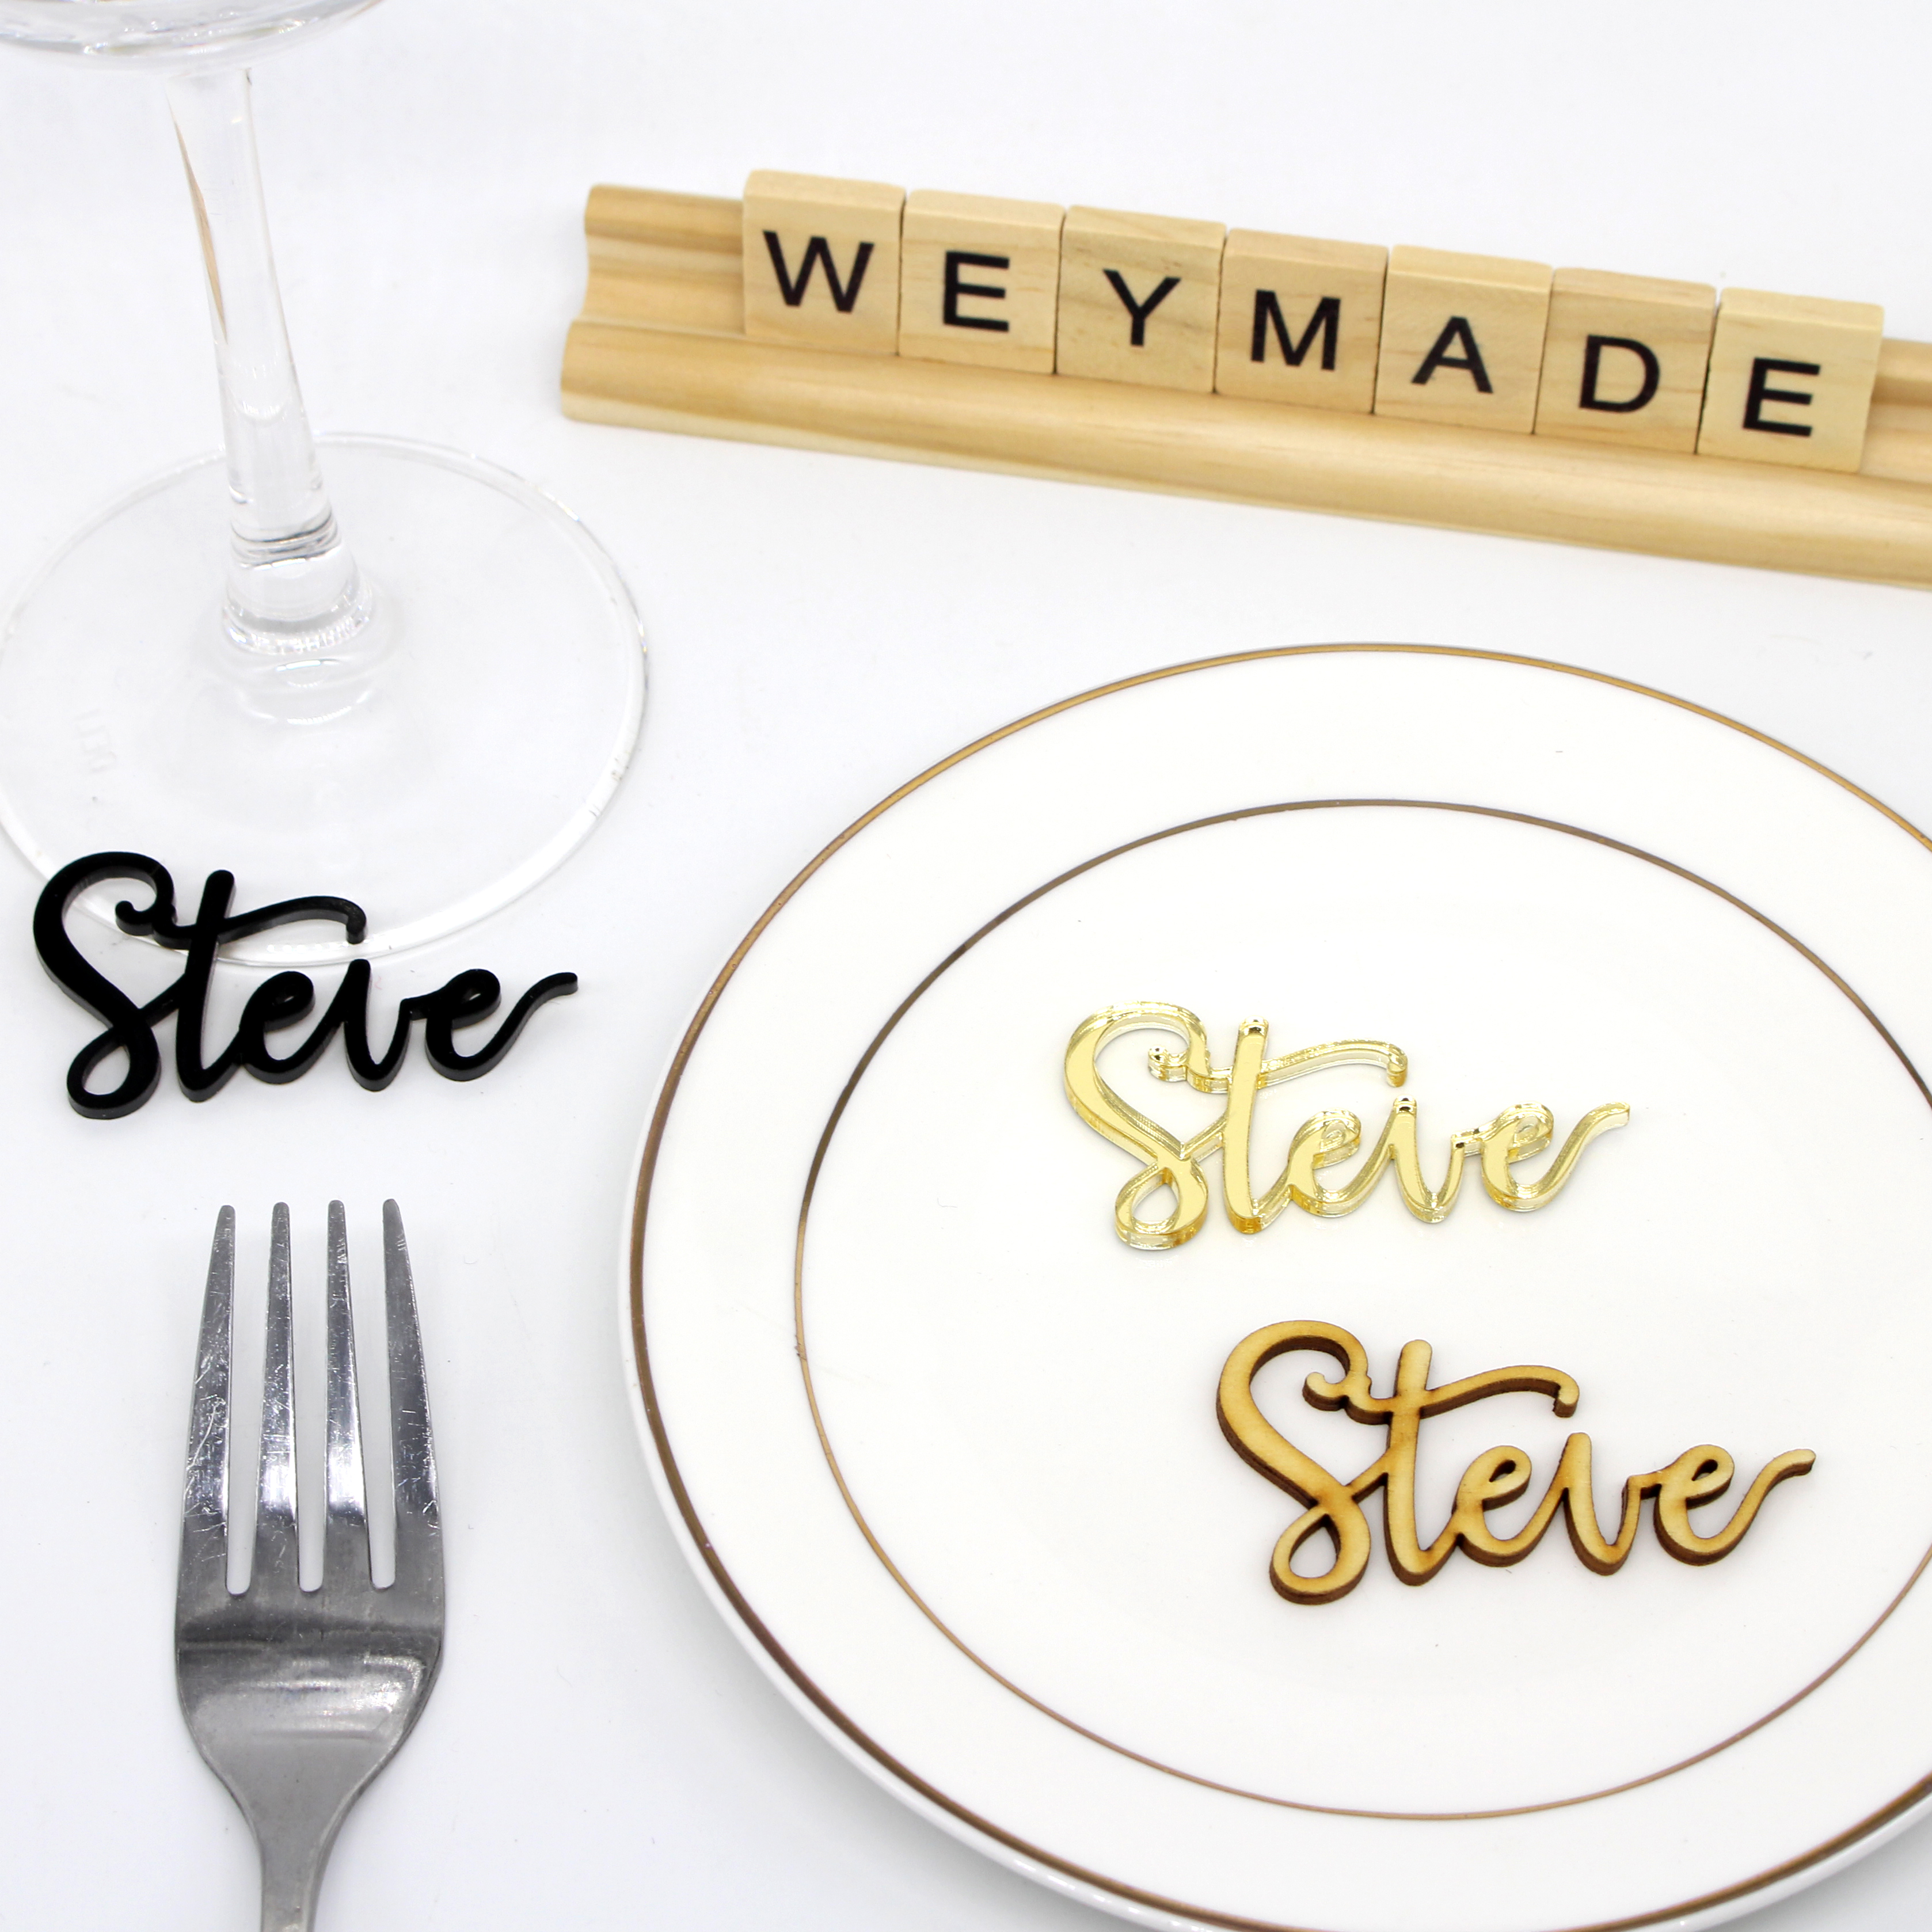 Guest name Wedding Place name settings Wedding guest name Table names Personalized Guest Name Wedding signs Personalized place cards